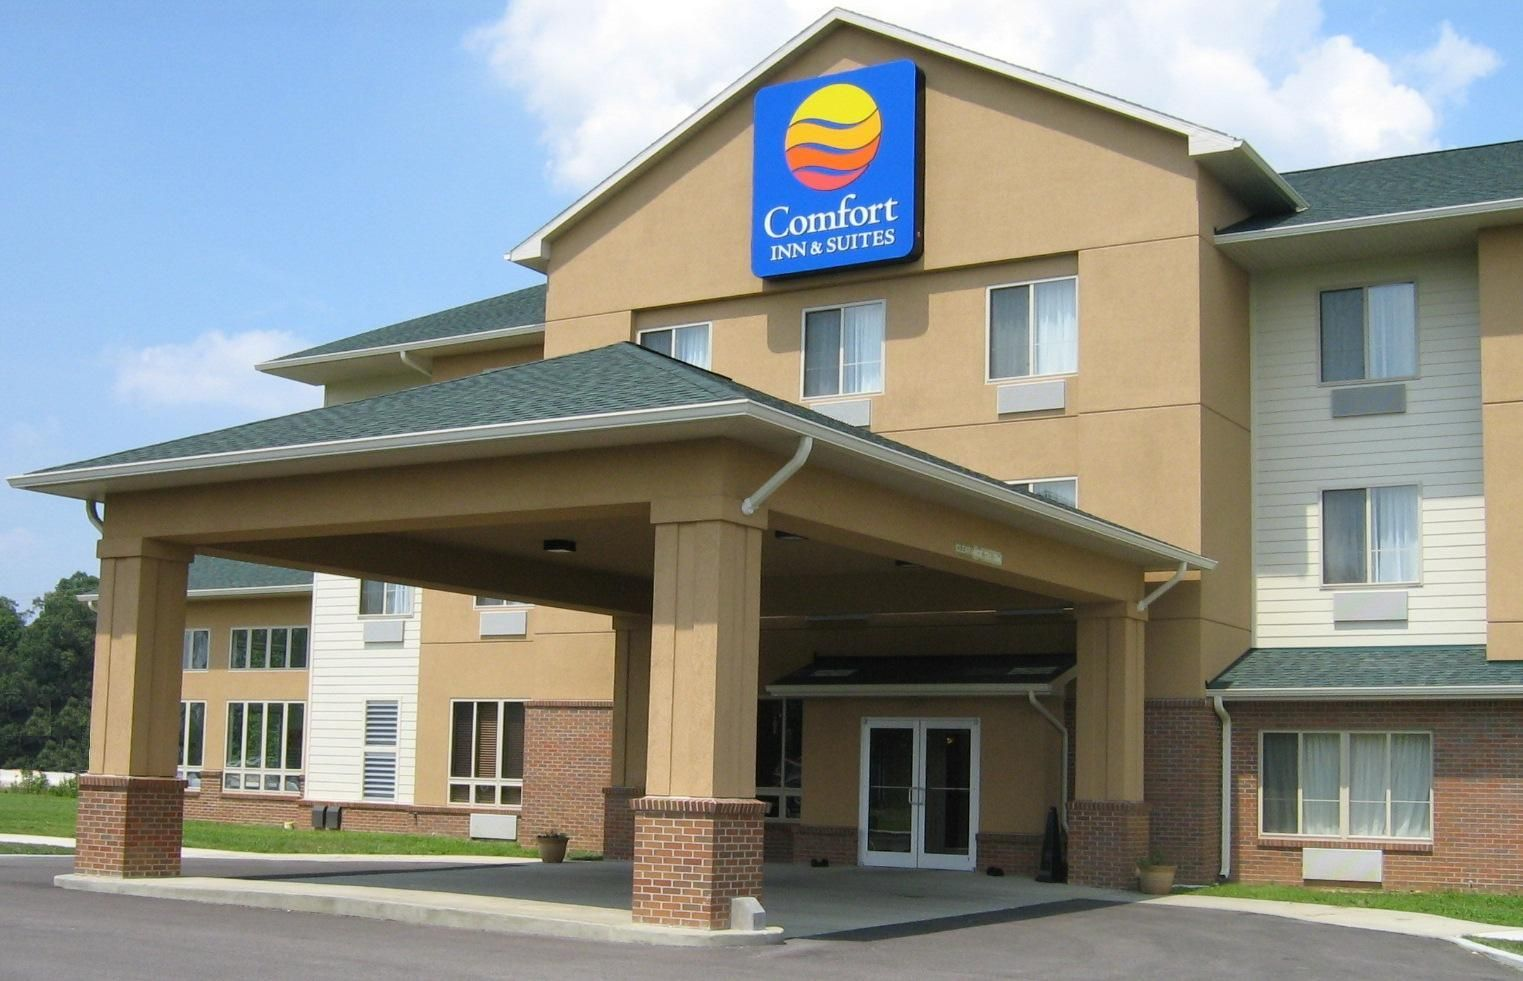 Comfort Inn & Suites Hotel Near Rockport, Indiana Hotel